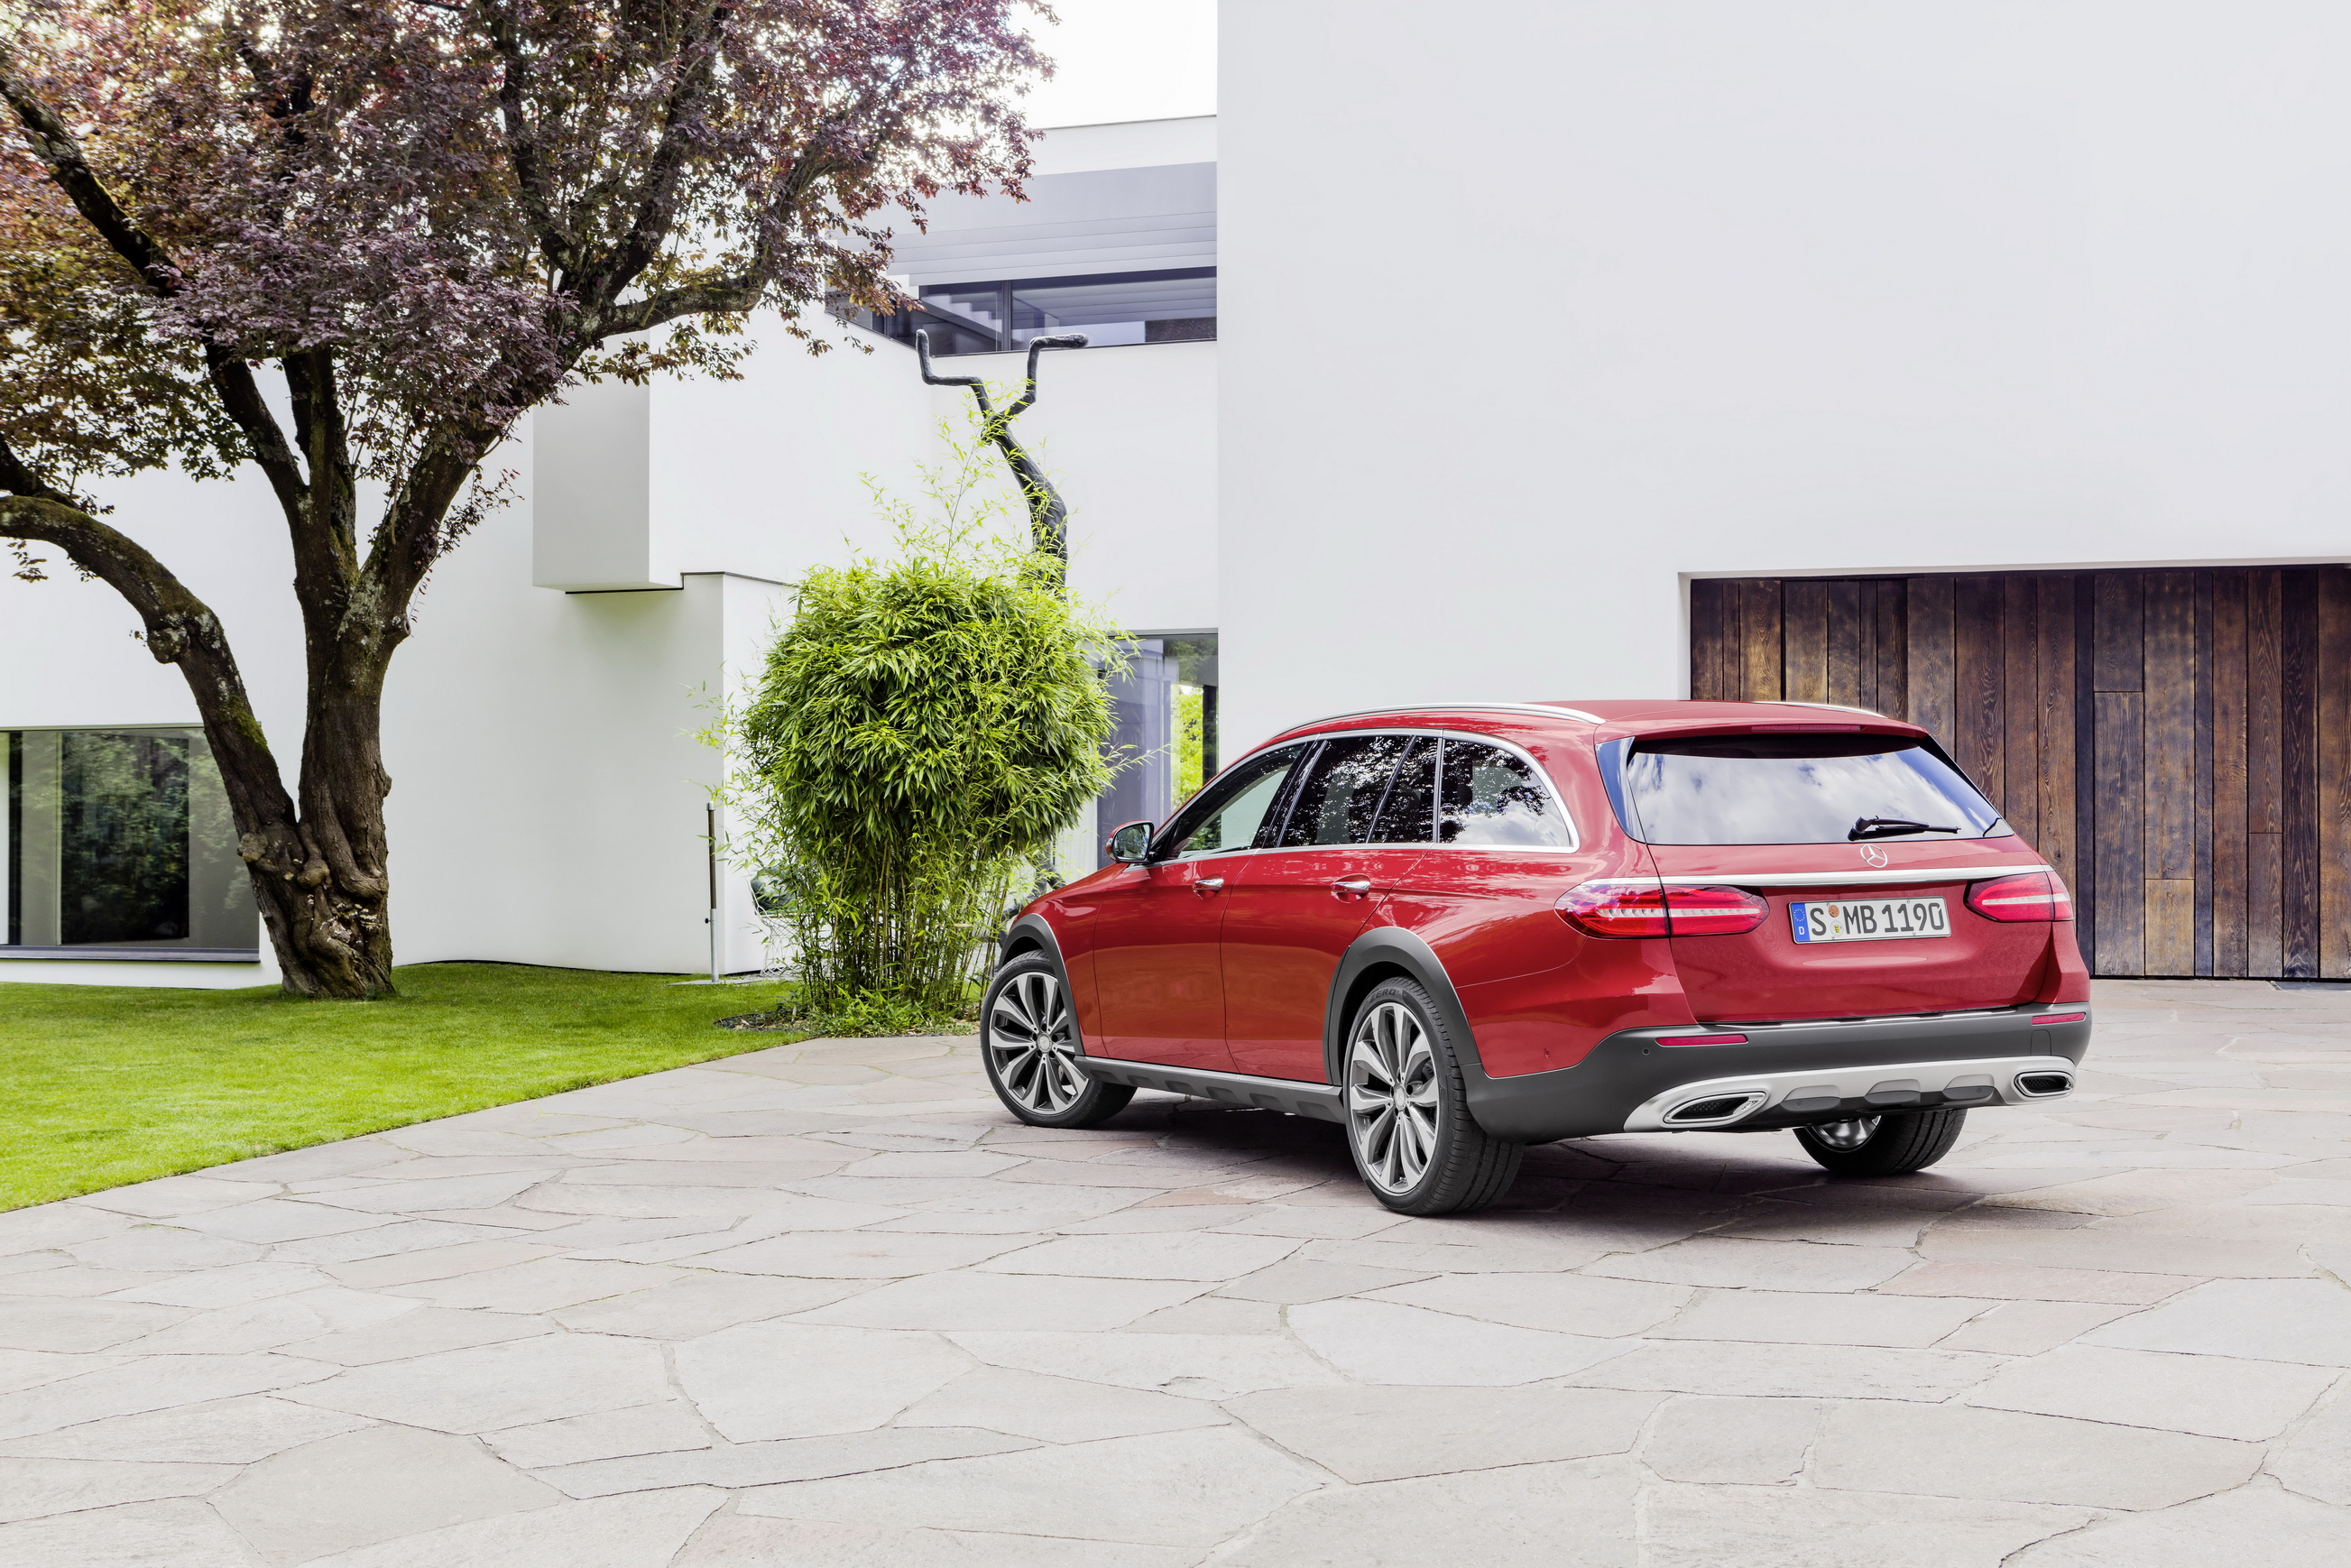 Mercedes-Benz E-Klasse All Terrain; Outdoor; 2016; Exterieur: designo hyazinthrot metallic // Mercedes-Benz E-Class All Terrain; outdoor; 2016; exterior: designo hyacinth red metallic